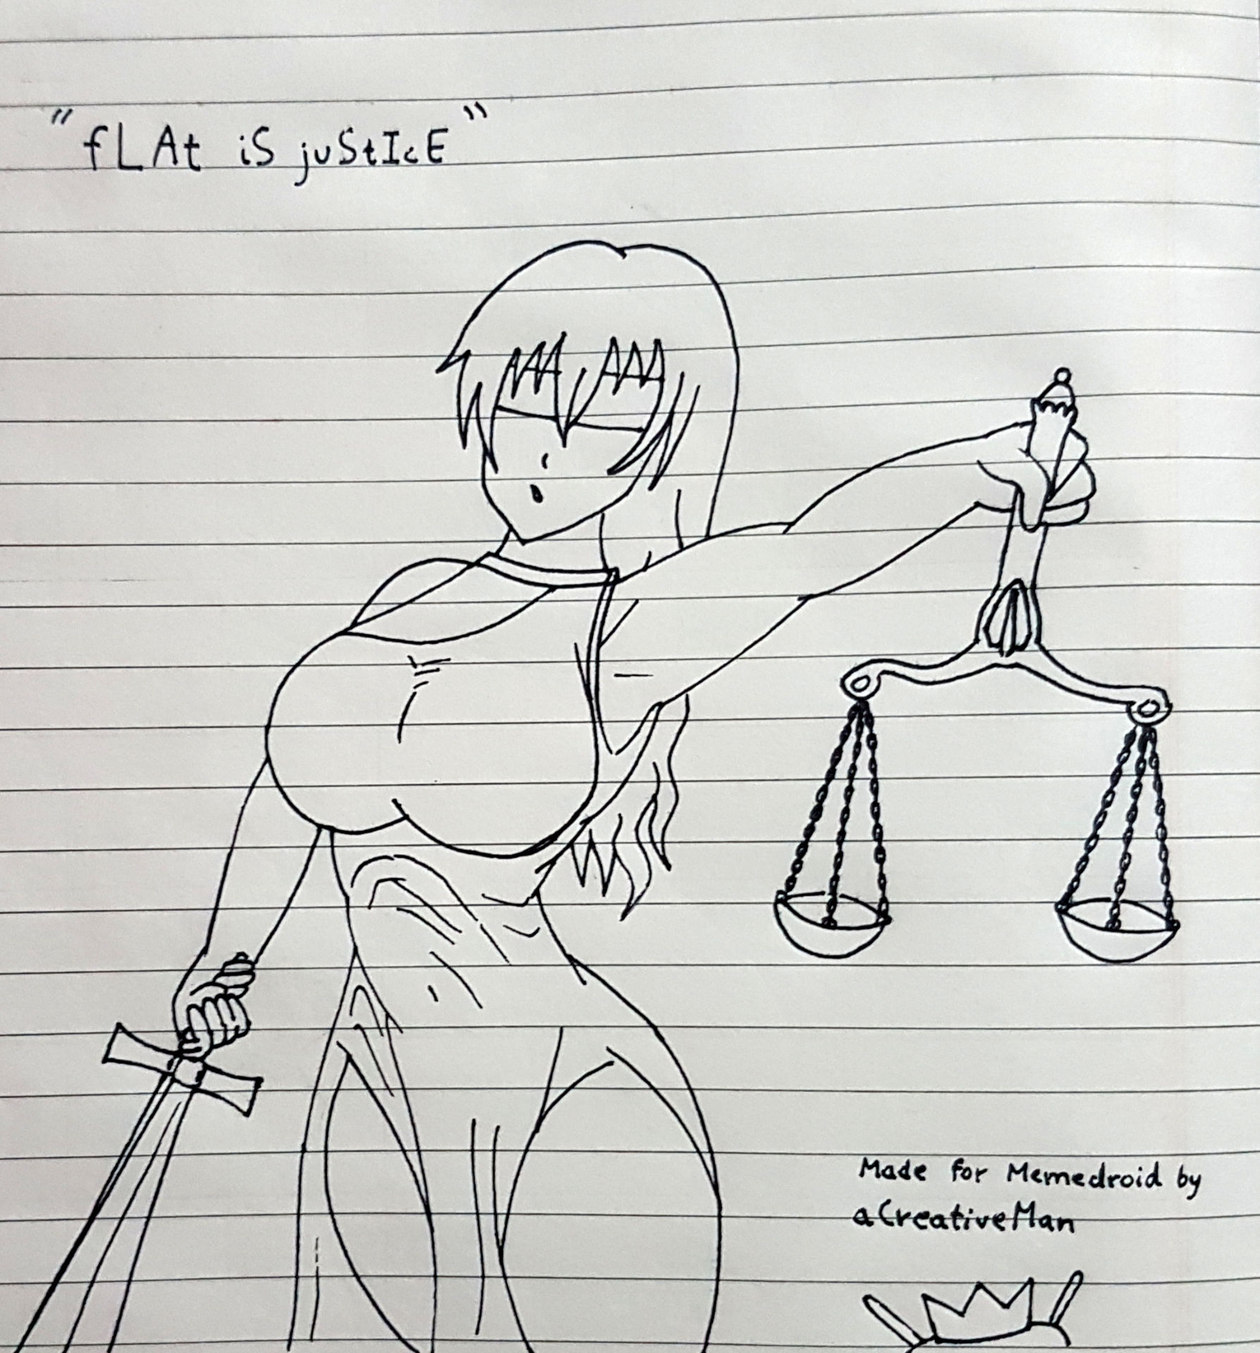 Justice isn't thicc - meme